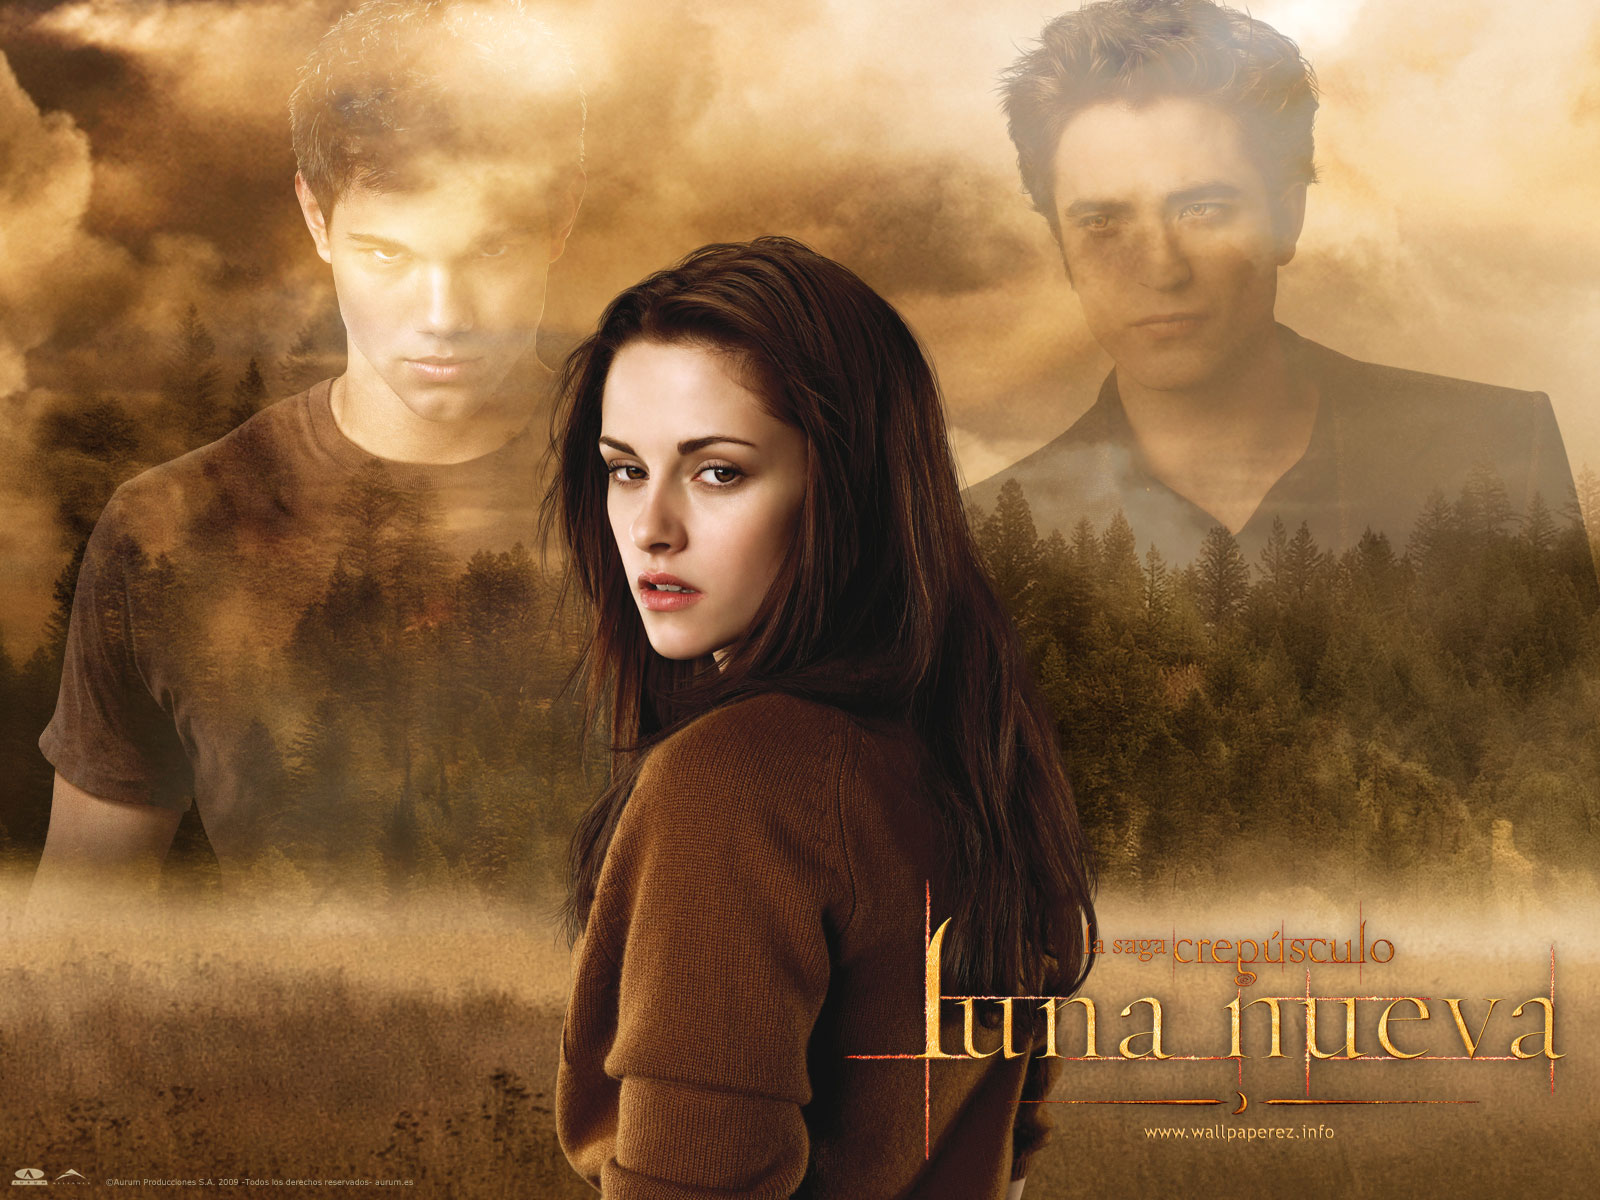 the twilight saga: new moon wallpaper and background image